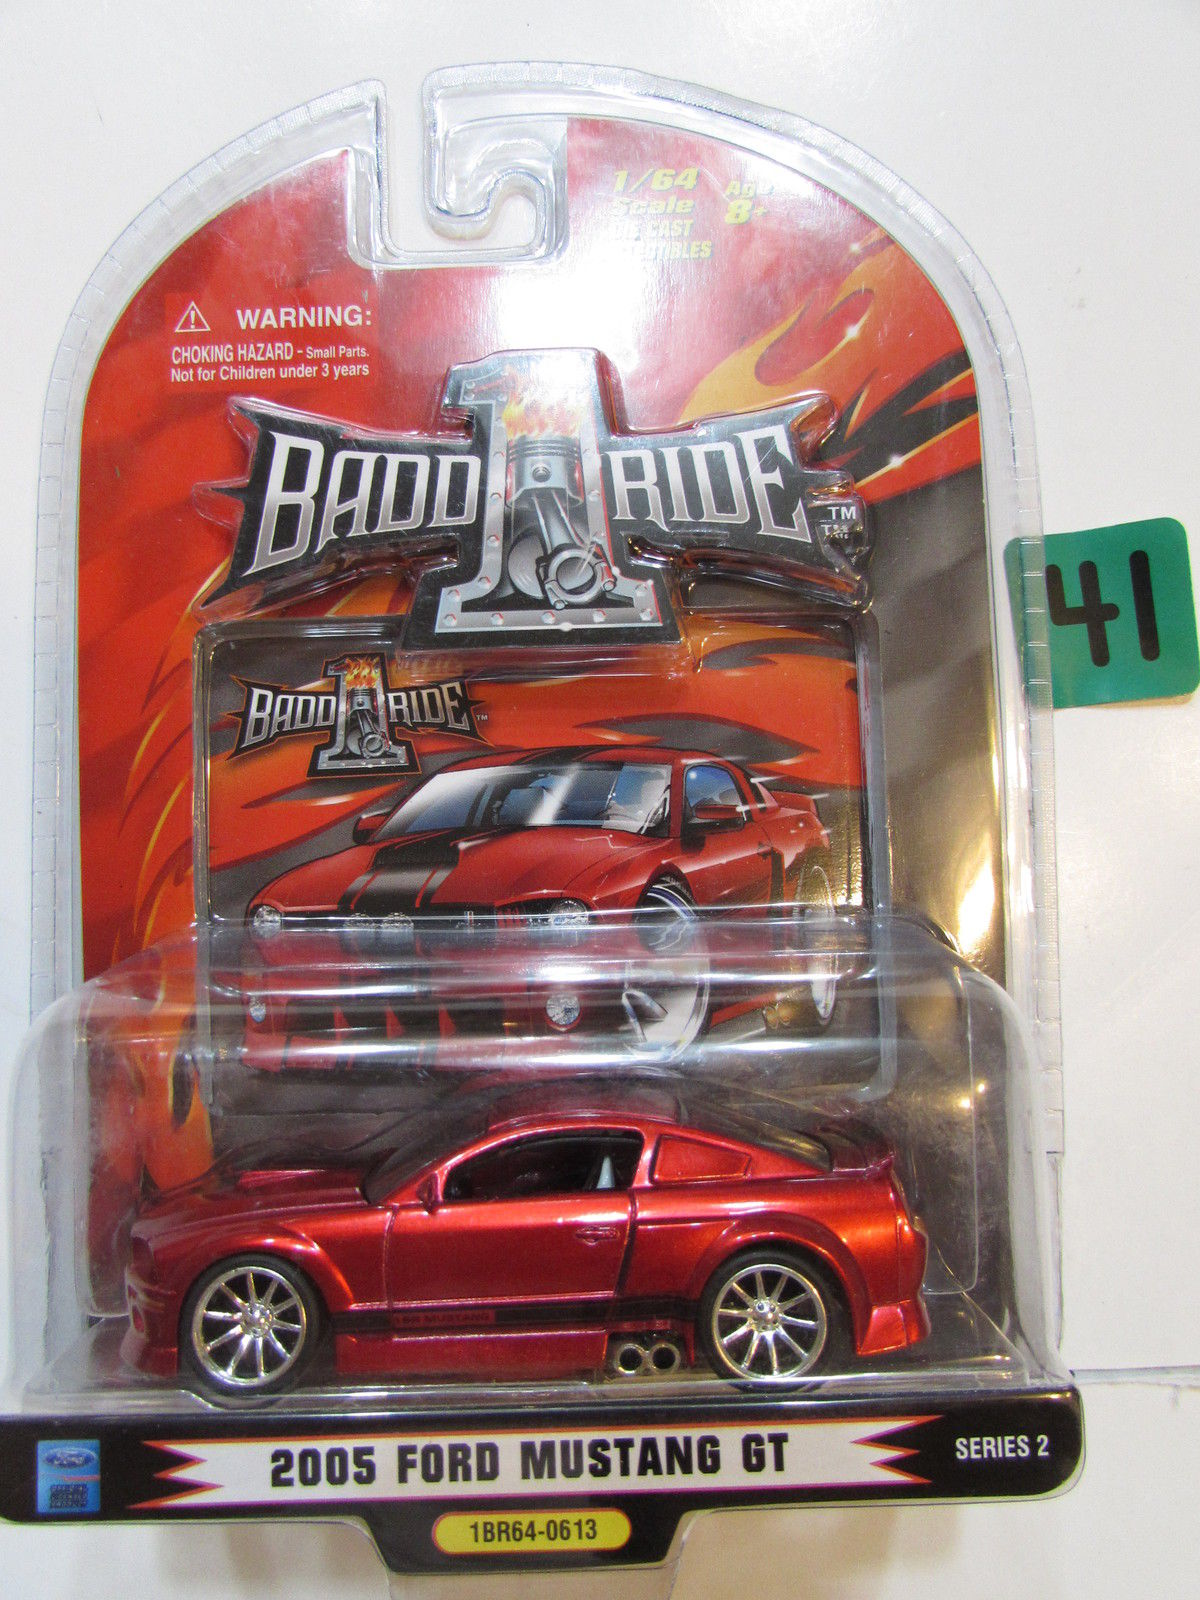 NASCAR 1 BADD RIDE 2005 FORD MUSTANG GT RED SERIES 2 SCALE 1:64